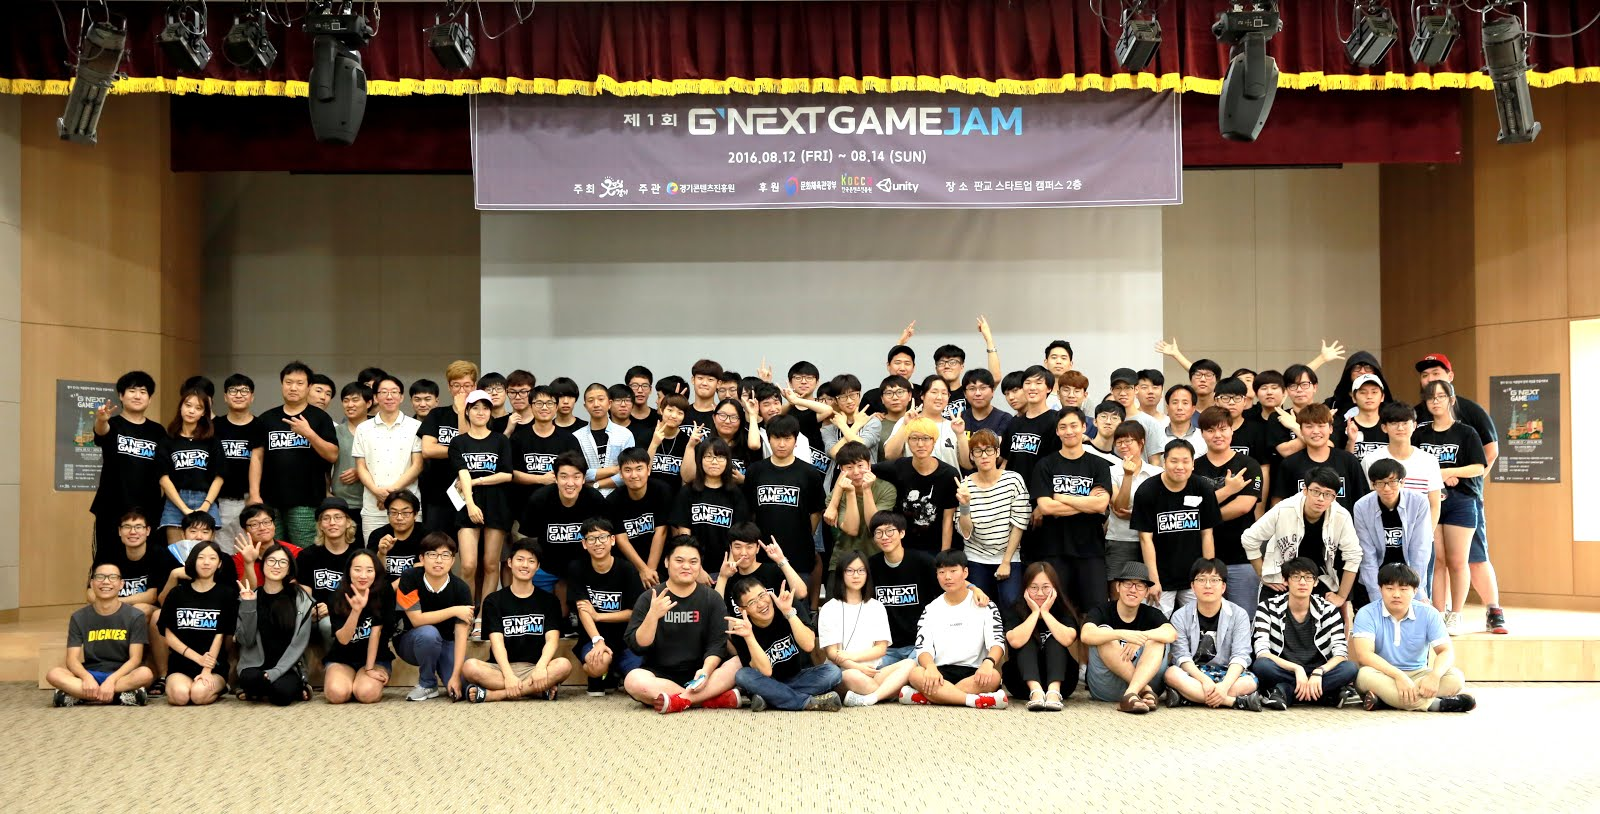 g next gamejam korean indie game developer festival tech guru game jam platforms are extremely helpful to bring out the creativity develop team building skills get hold of latest game development platforms